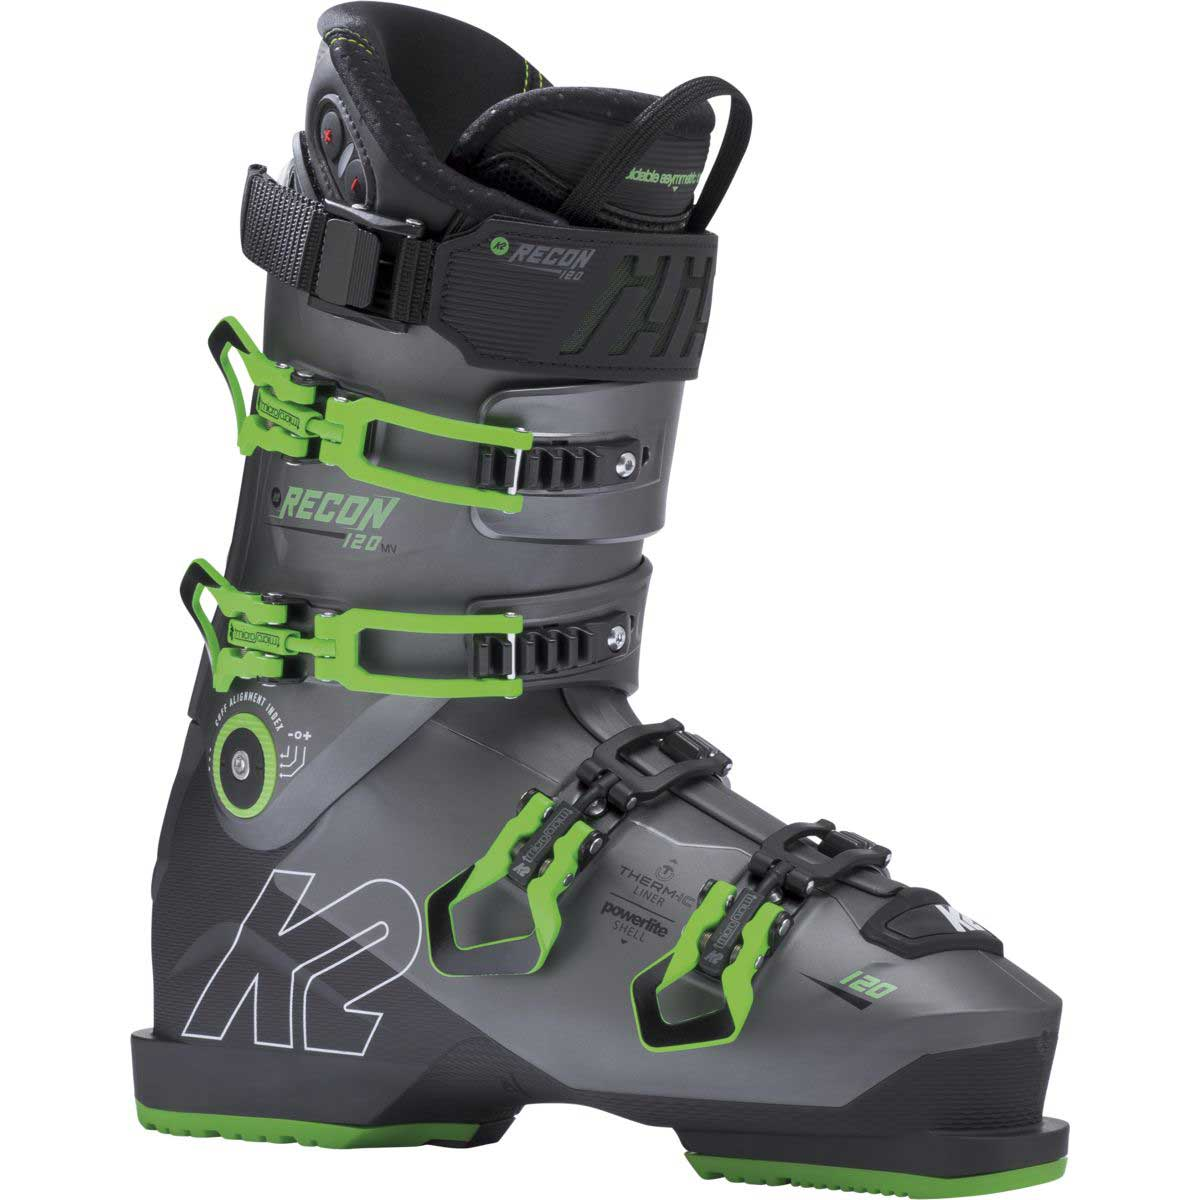 K2 Recon 120 LV ski boot in dark grey and green